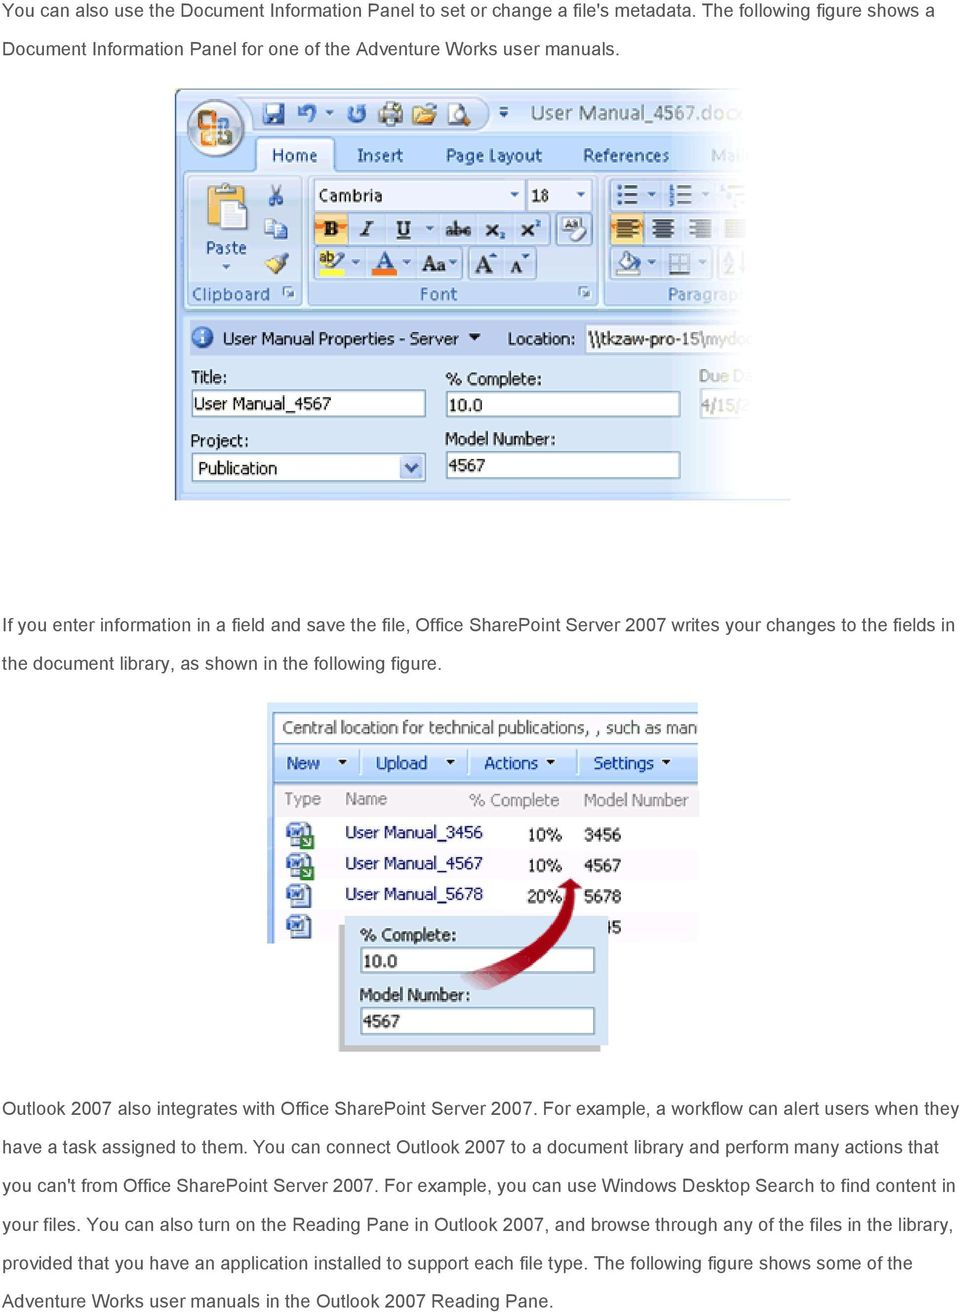 Outlook 2007 also integrates with Office SharePoint Server 2007. For example, a workflow can alert users when they have a task assigned to them.